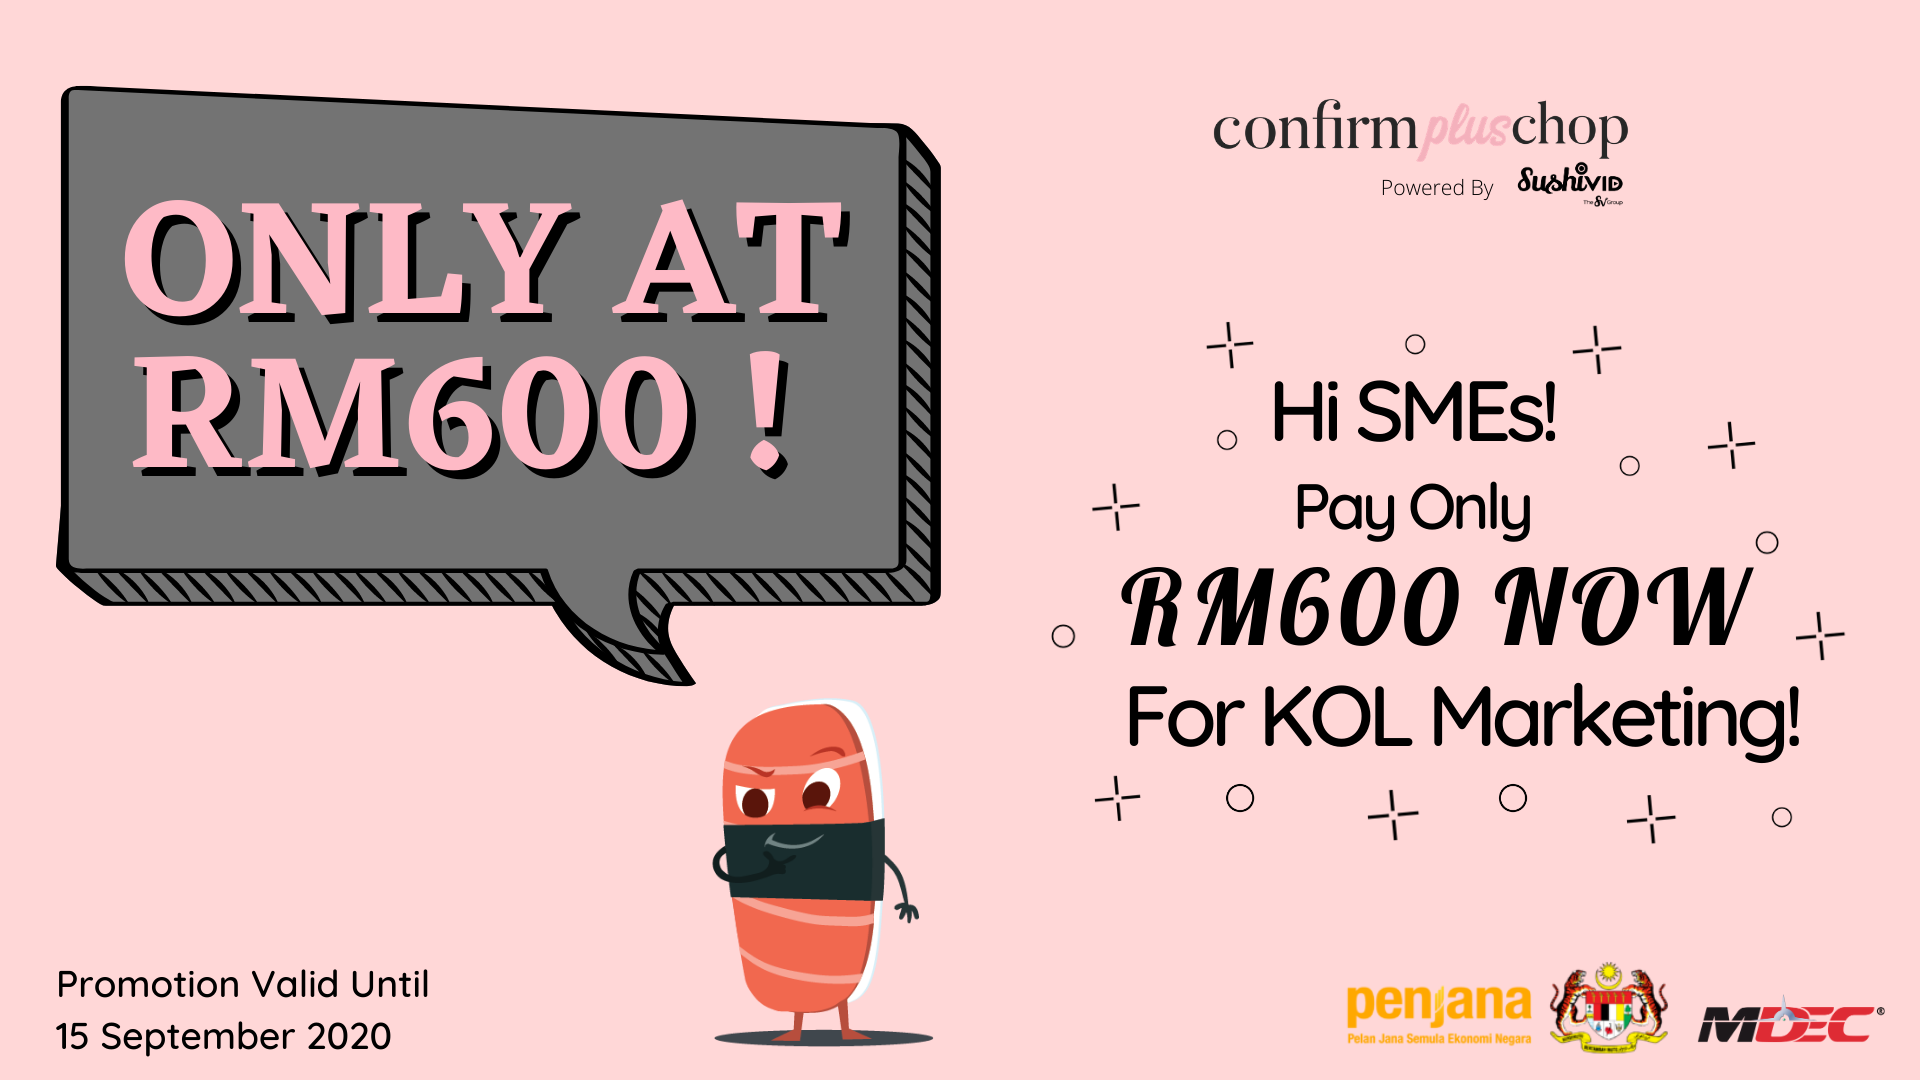 Hi SMEs! Pay Only RM600 For KOL Marketing!